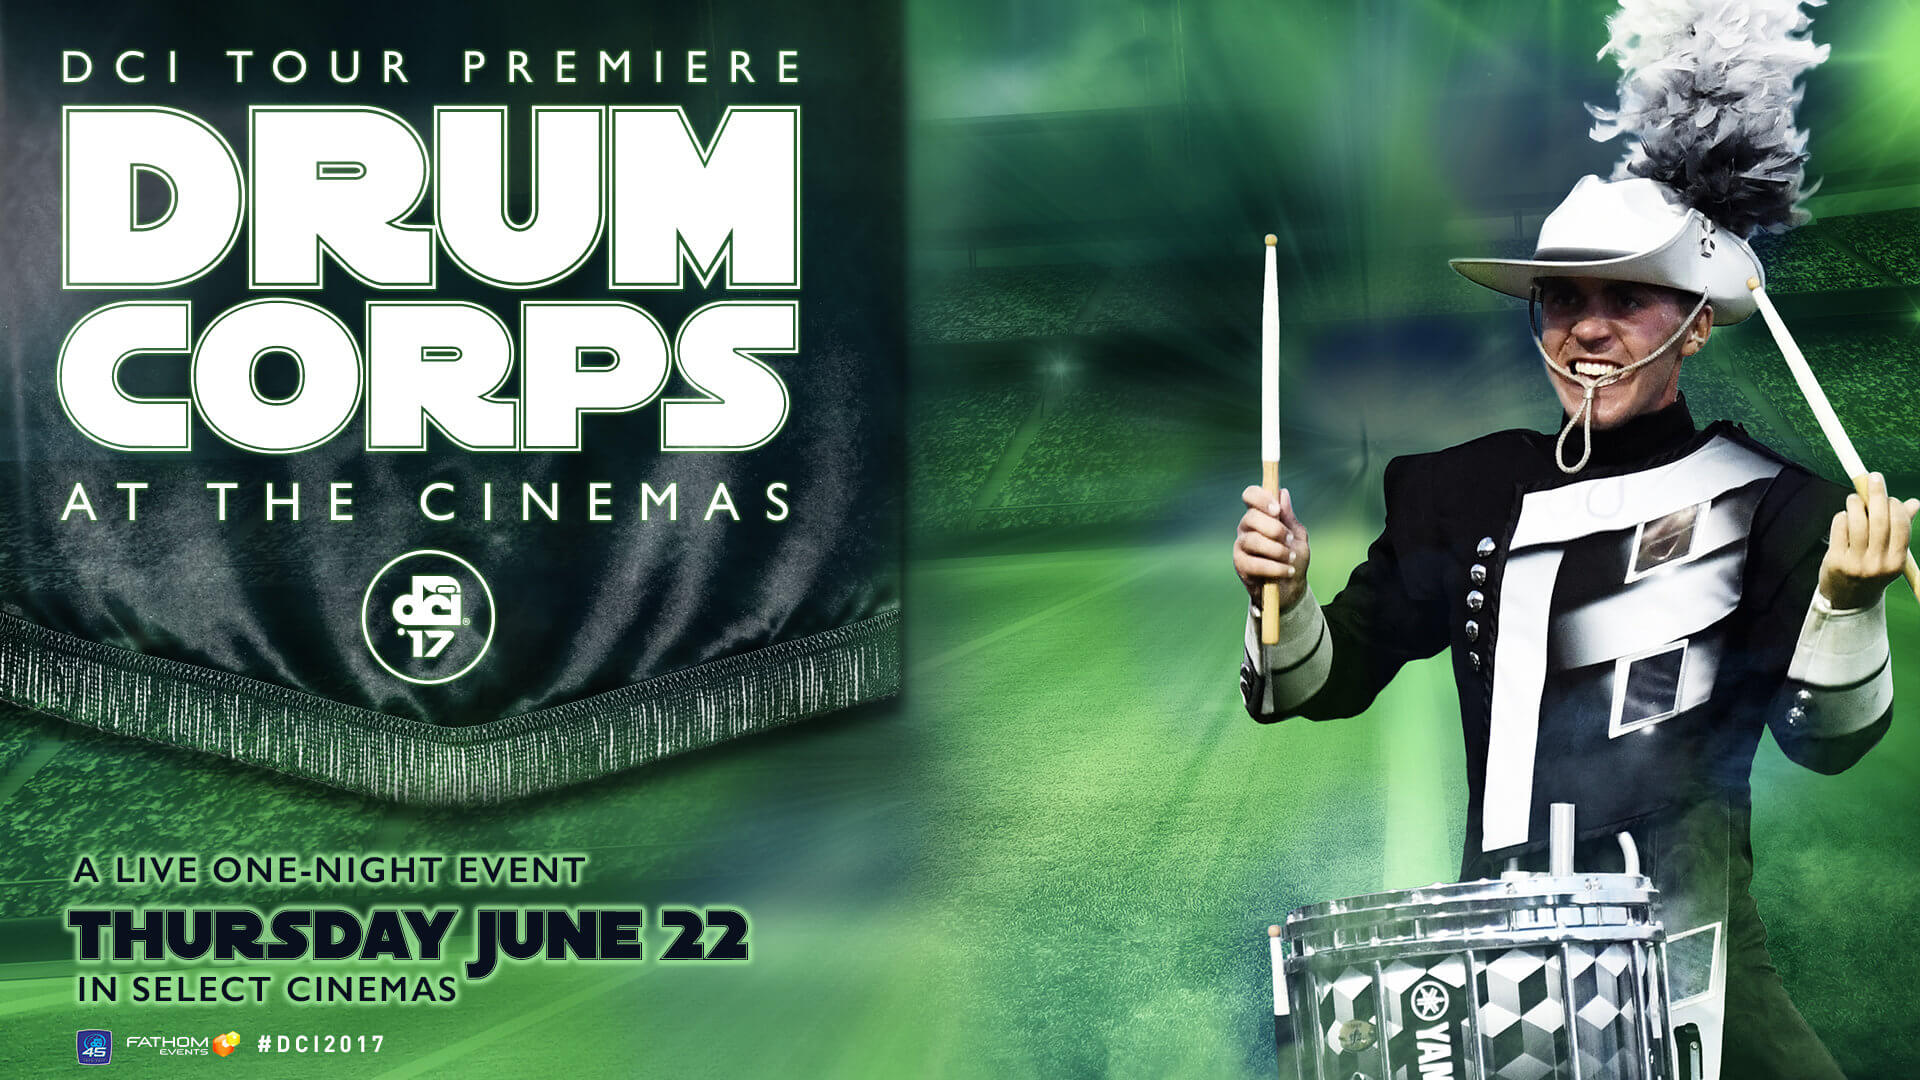 DCI Tour Premiere coming to select cinemas nationwide